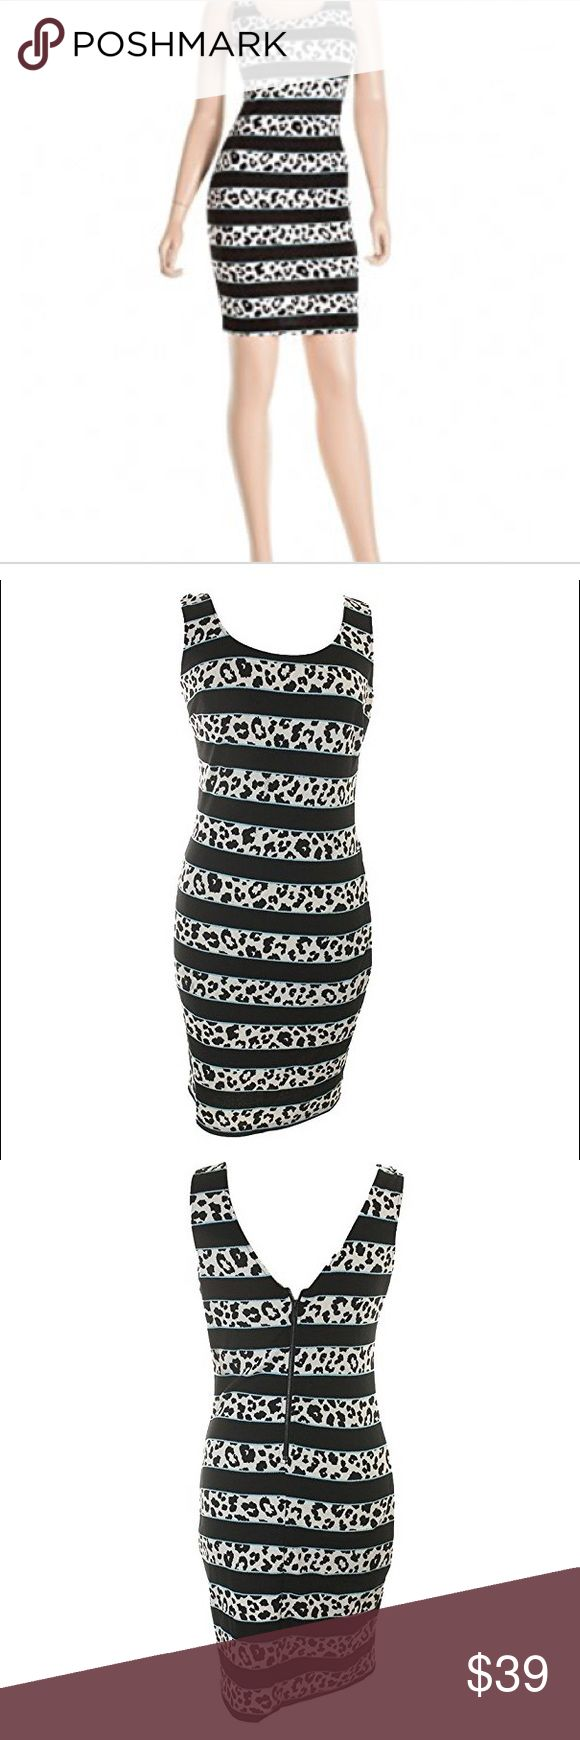 """Bar iii Textured Animal Print Party Dress. B58 Womens Textured Animal Print Party Dress. 95% polyester 5% spandex. 35"""" long. Lightweight fabric. Black and white colored with light blue trim. Bar III Dresses Mini"""